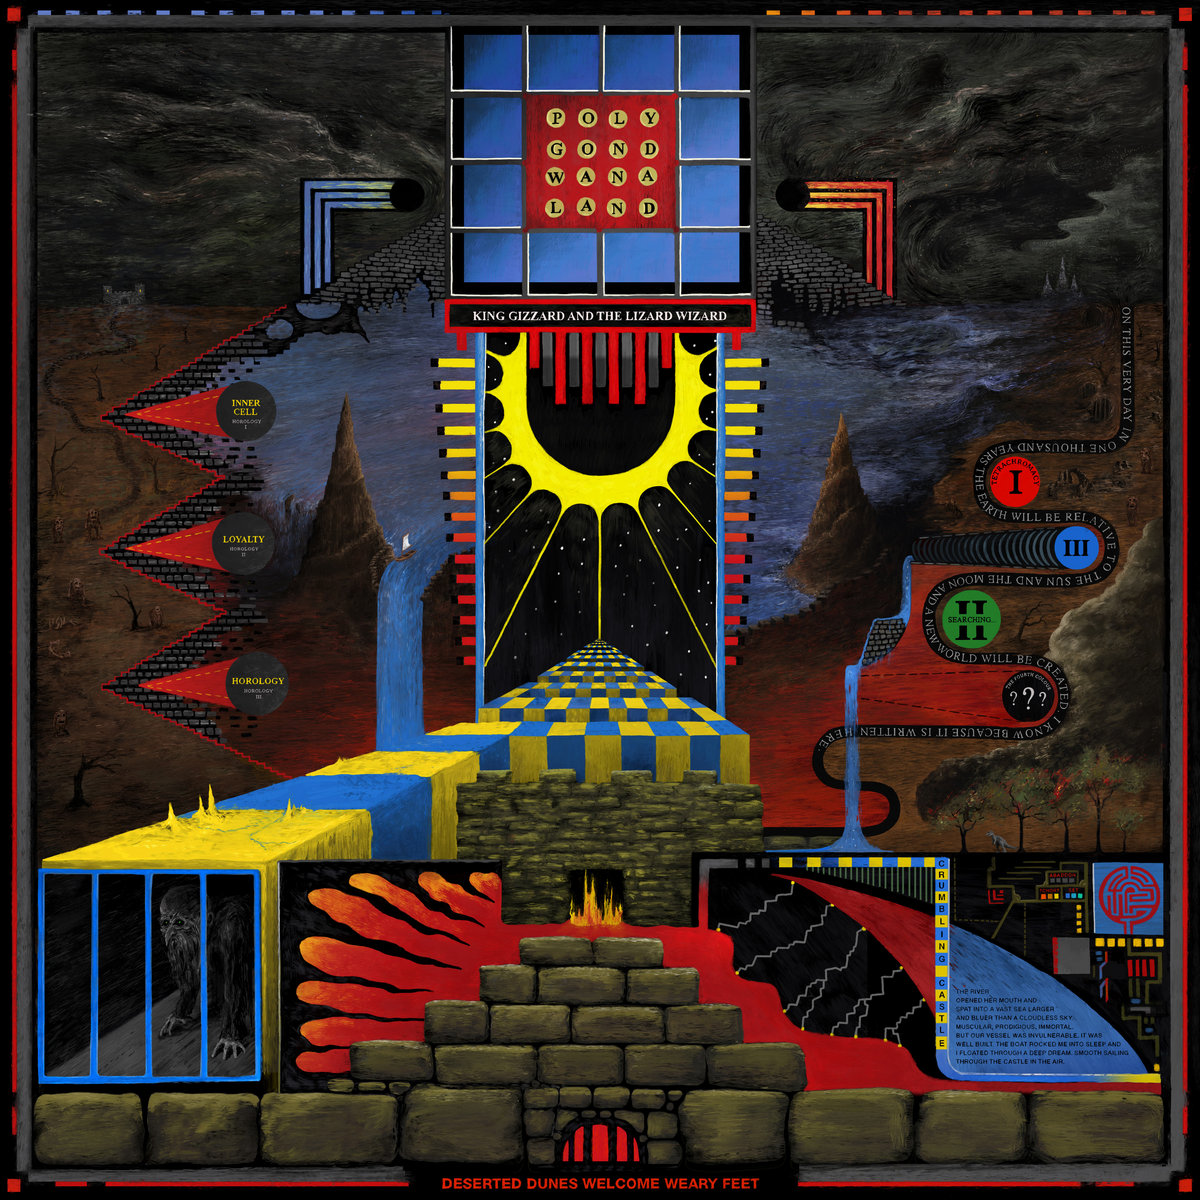 Polygondwanaland | King Gizzard & The Lizard Wizard